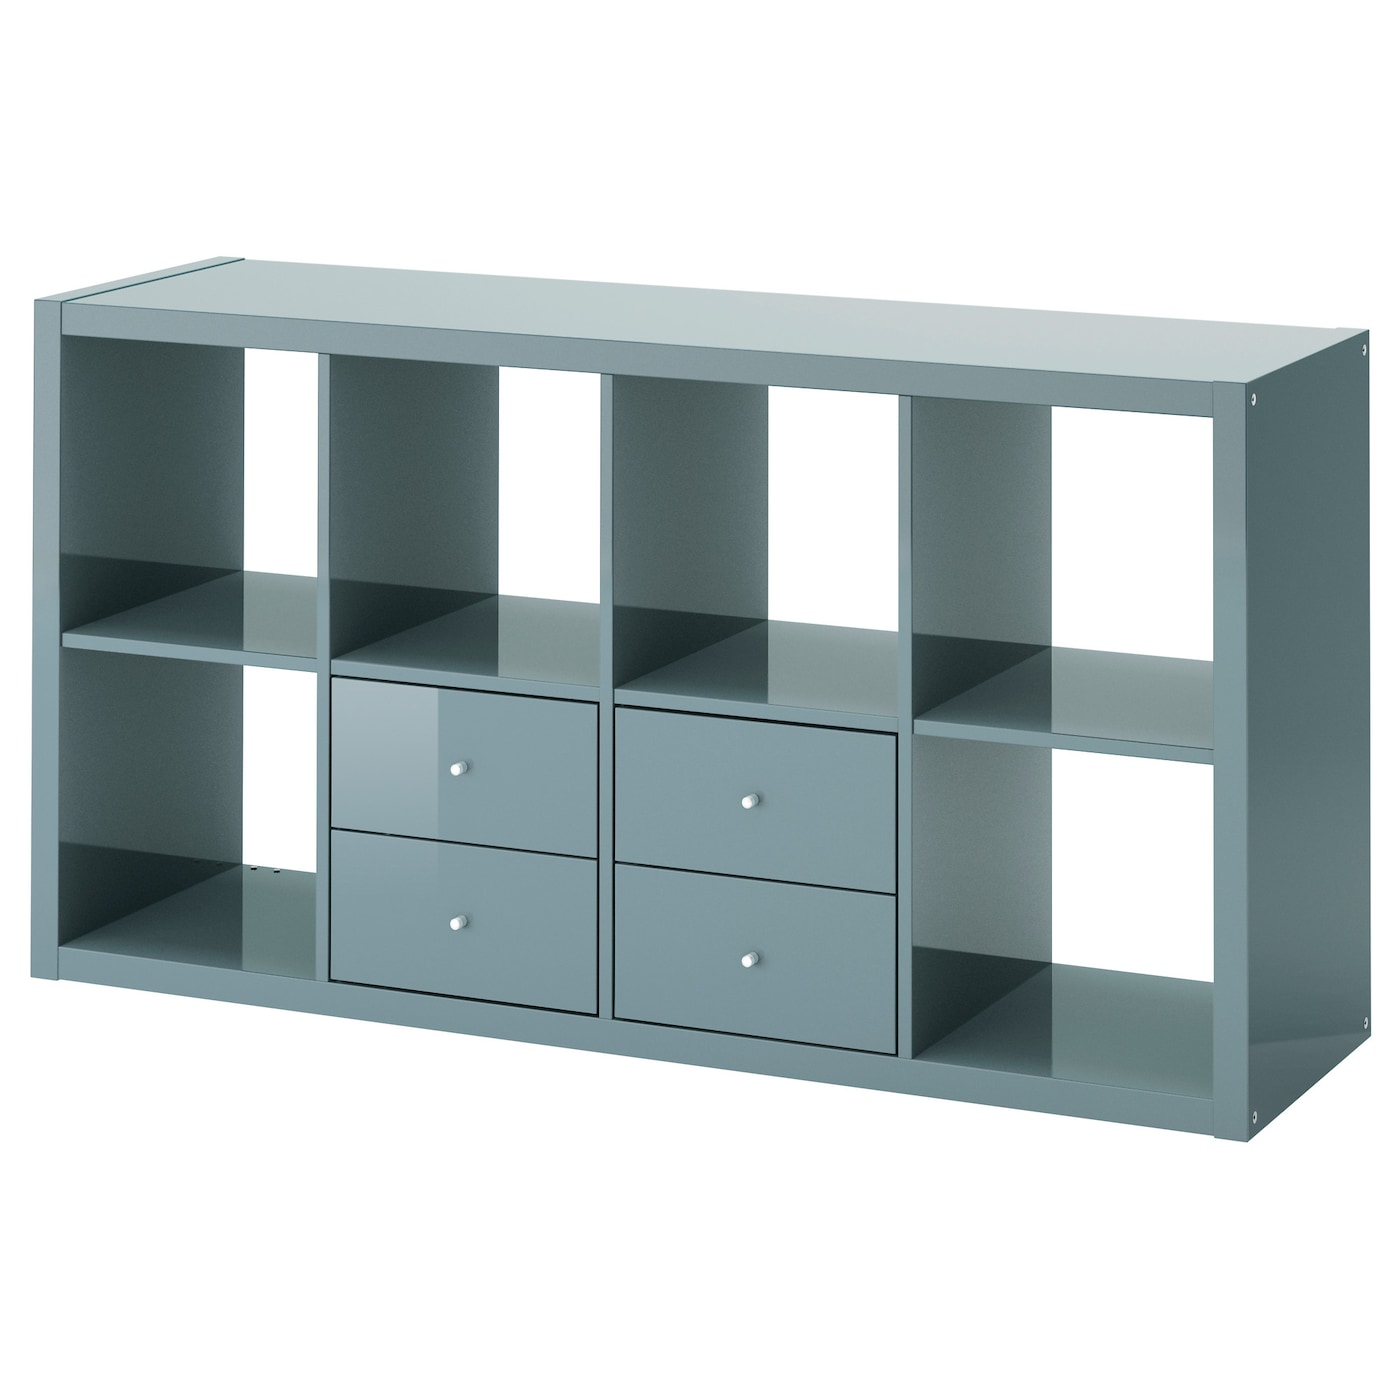 Ikea Kitchen Home Delivery Price